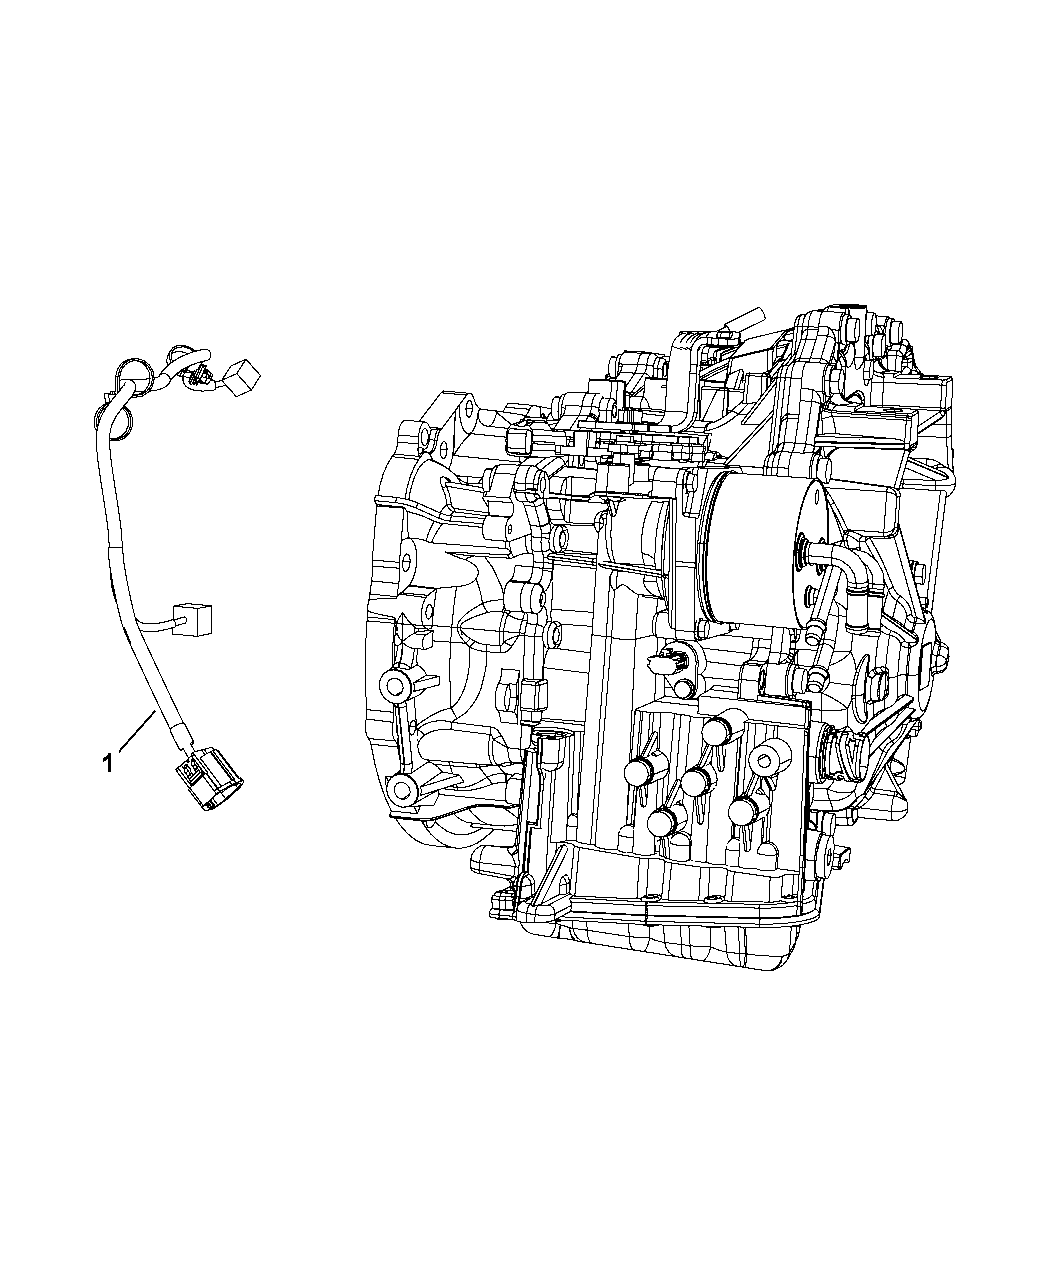 roger vivi ersaks: 2008 Dodge Caliber Wiring Diagram